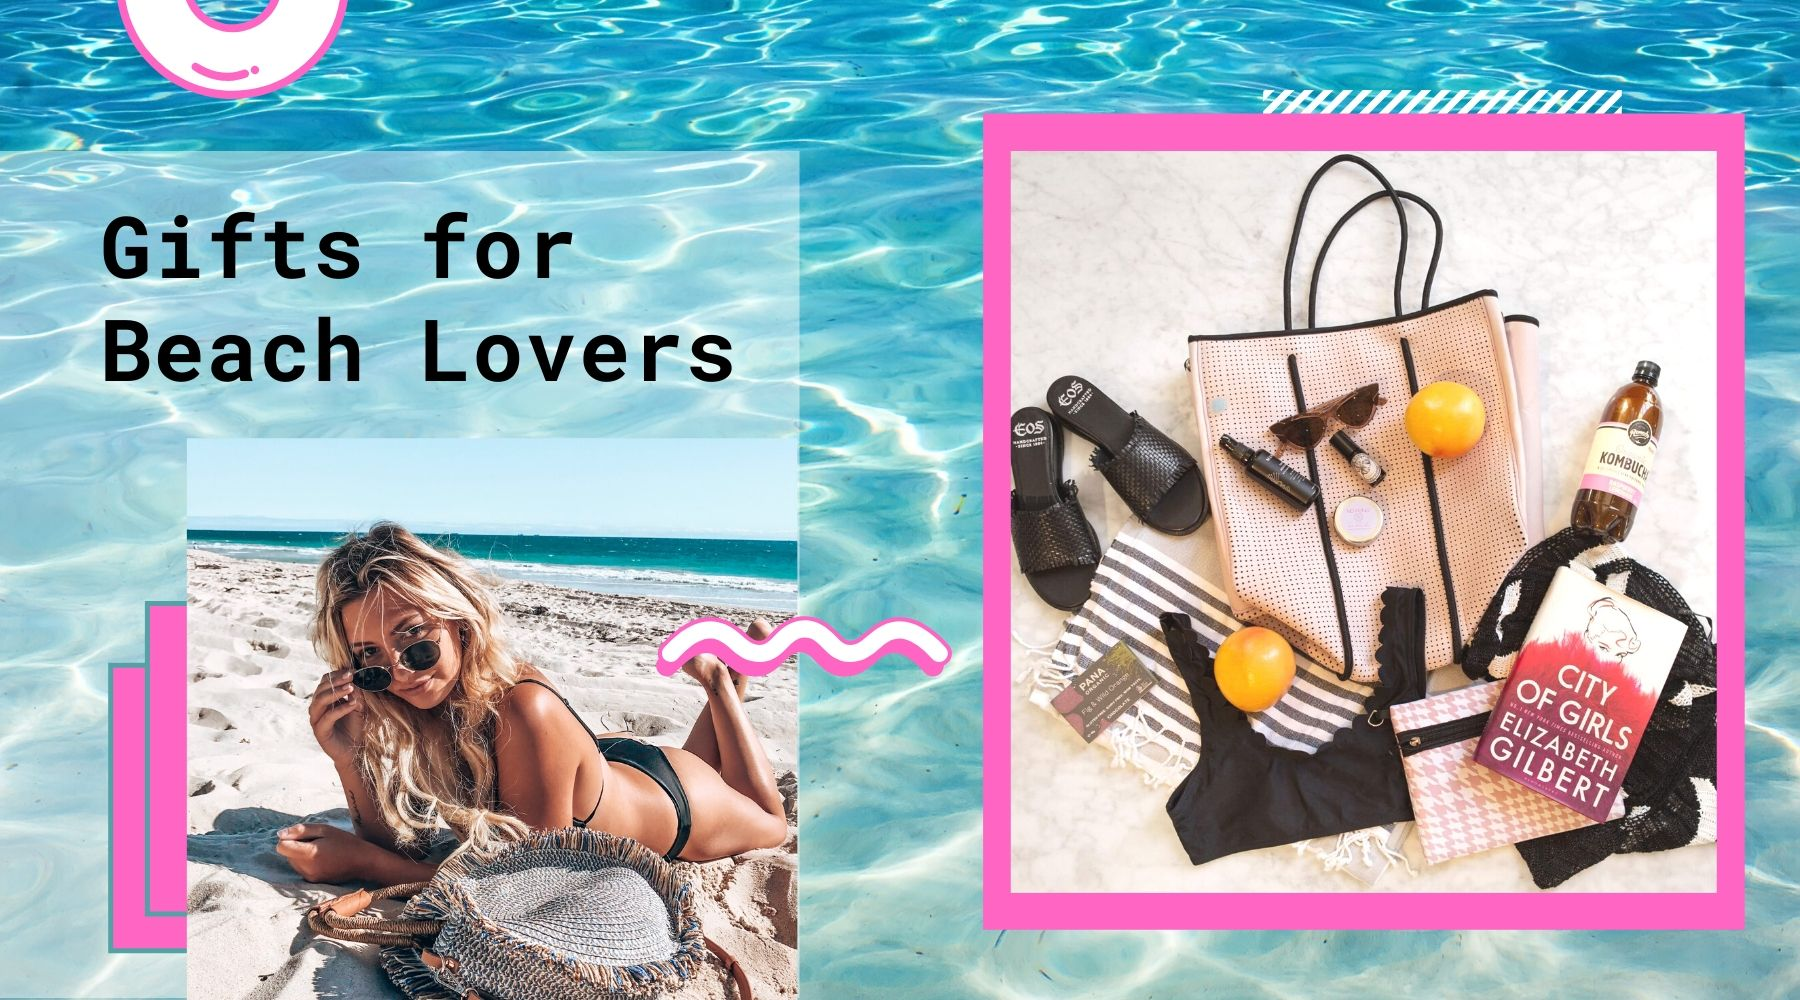 Gifts for Beach Lovers - Chuchka